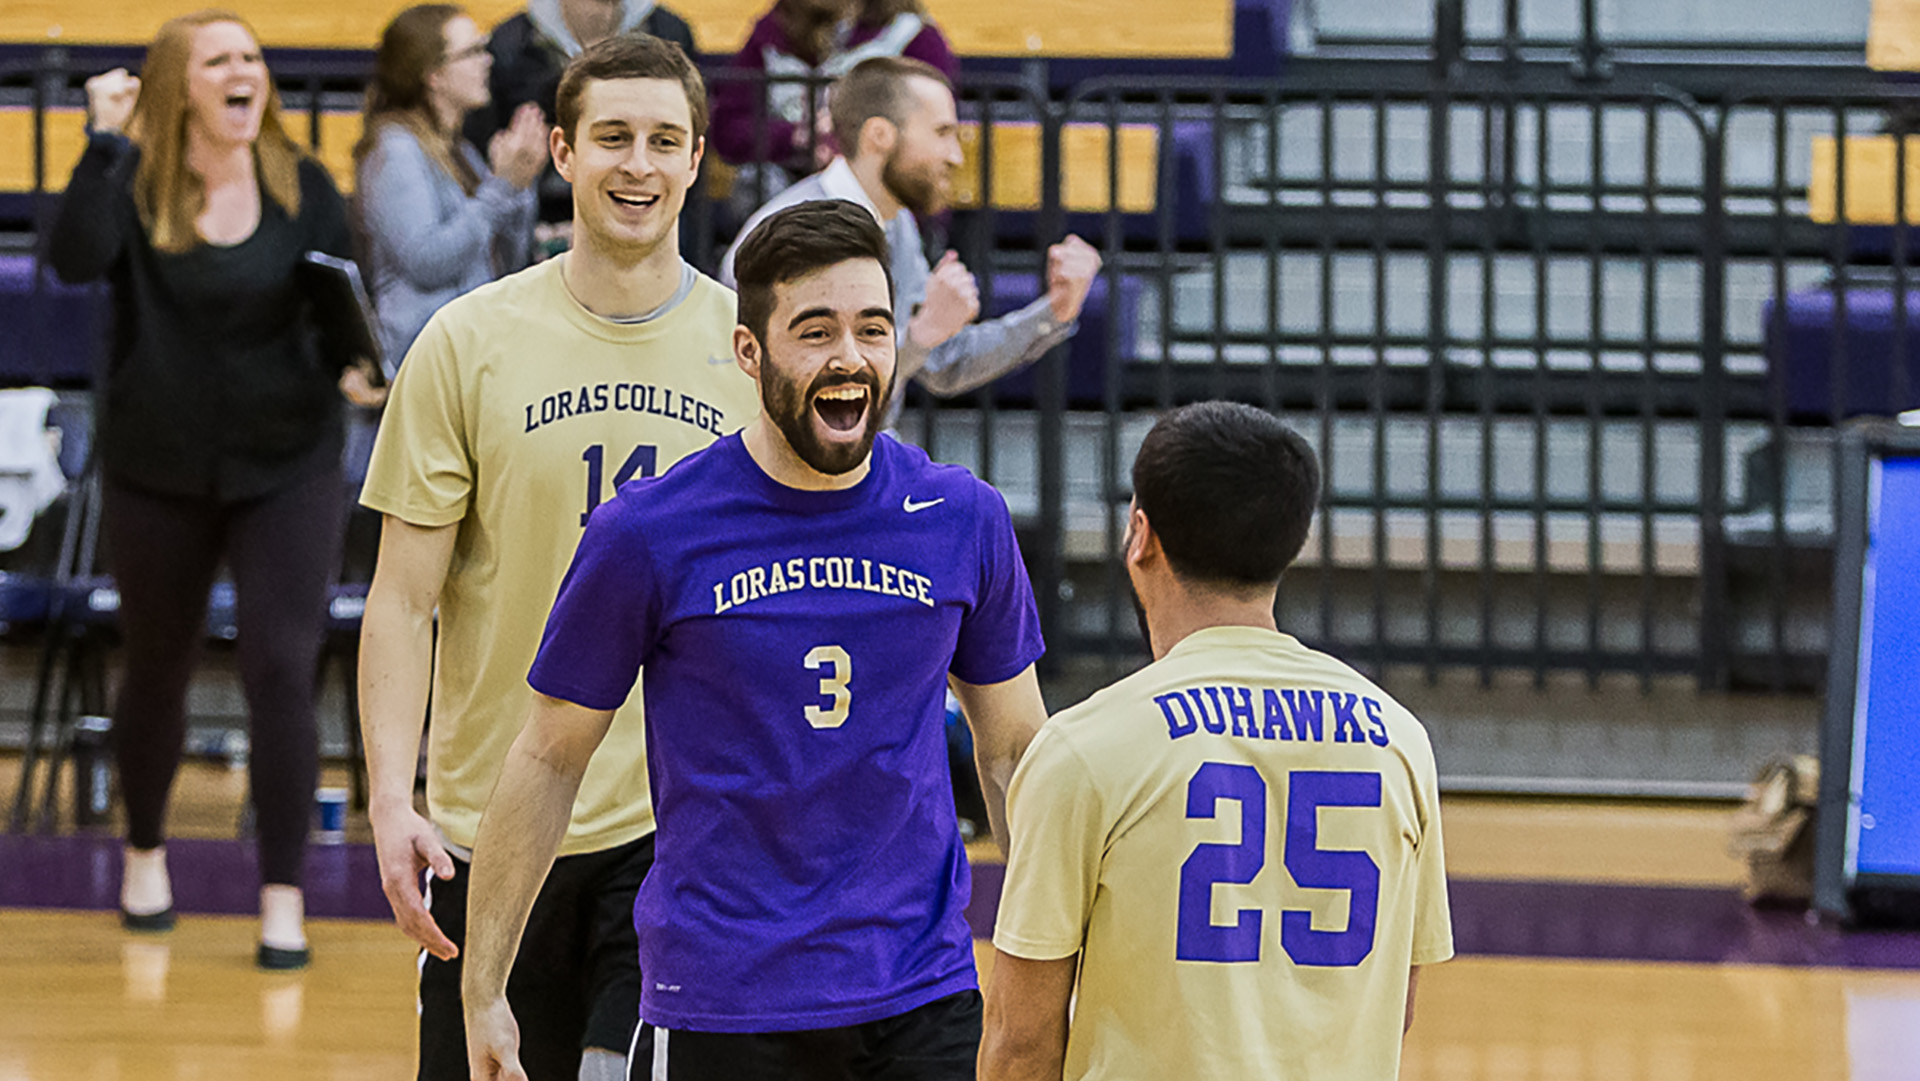 Blair Anderson - Men's Volleyball - Loras College Athletics